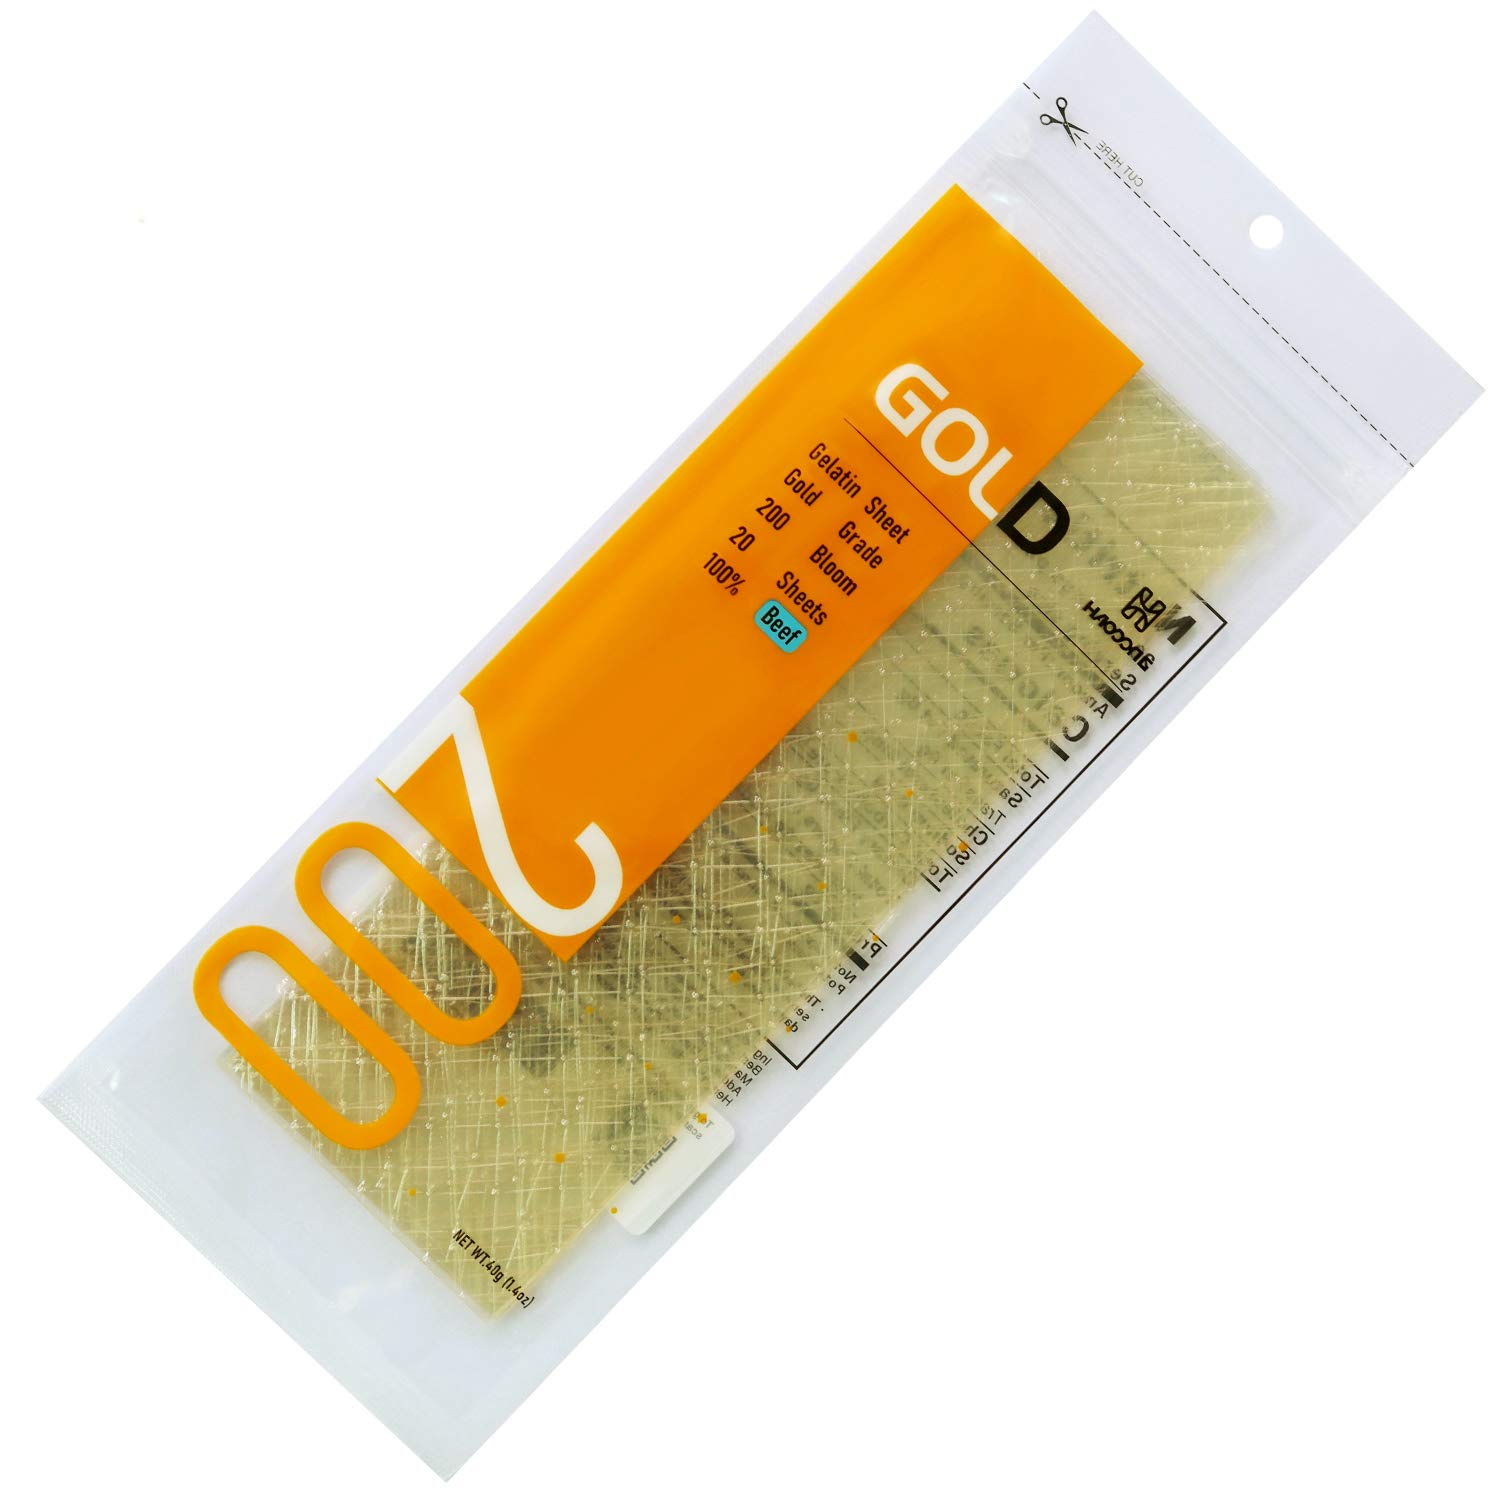 Haodong Beef excellence Gold Leaf Gelatin Sheets 40g 200 20Sheets Tucson Mall - Bloom